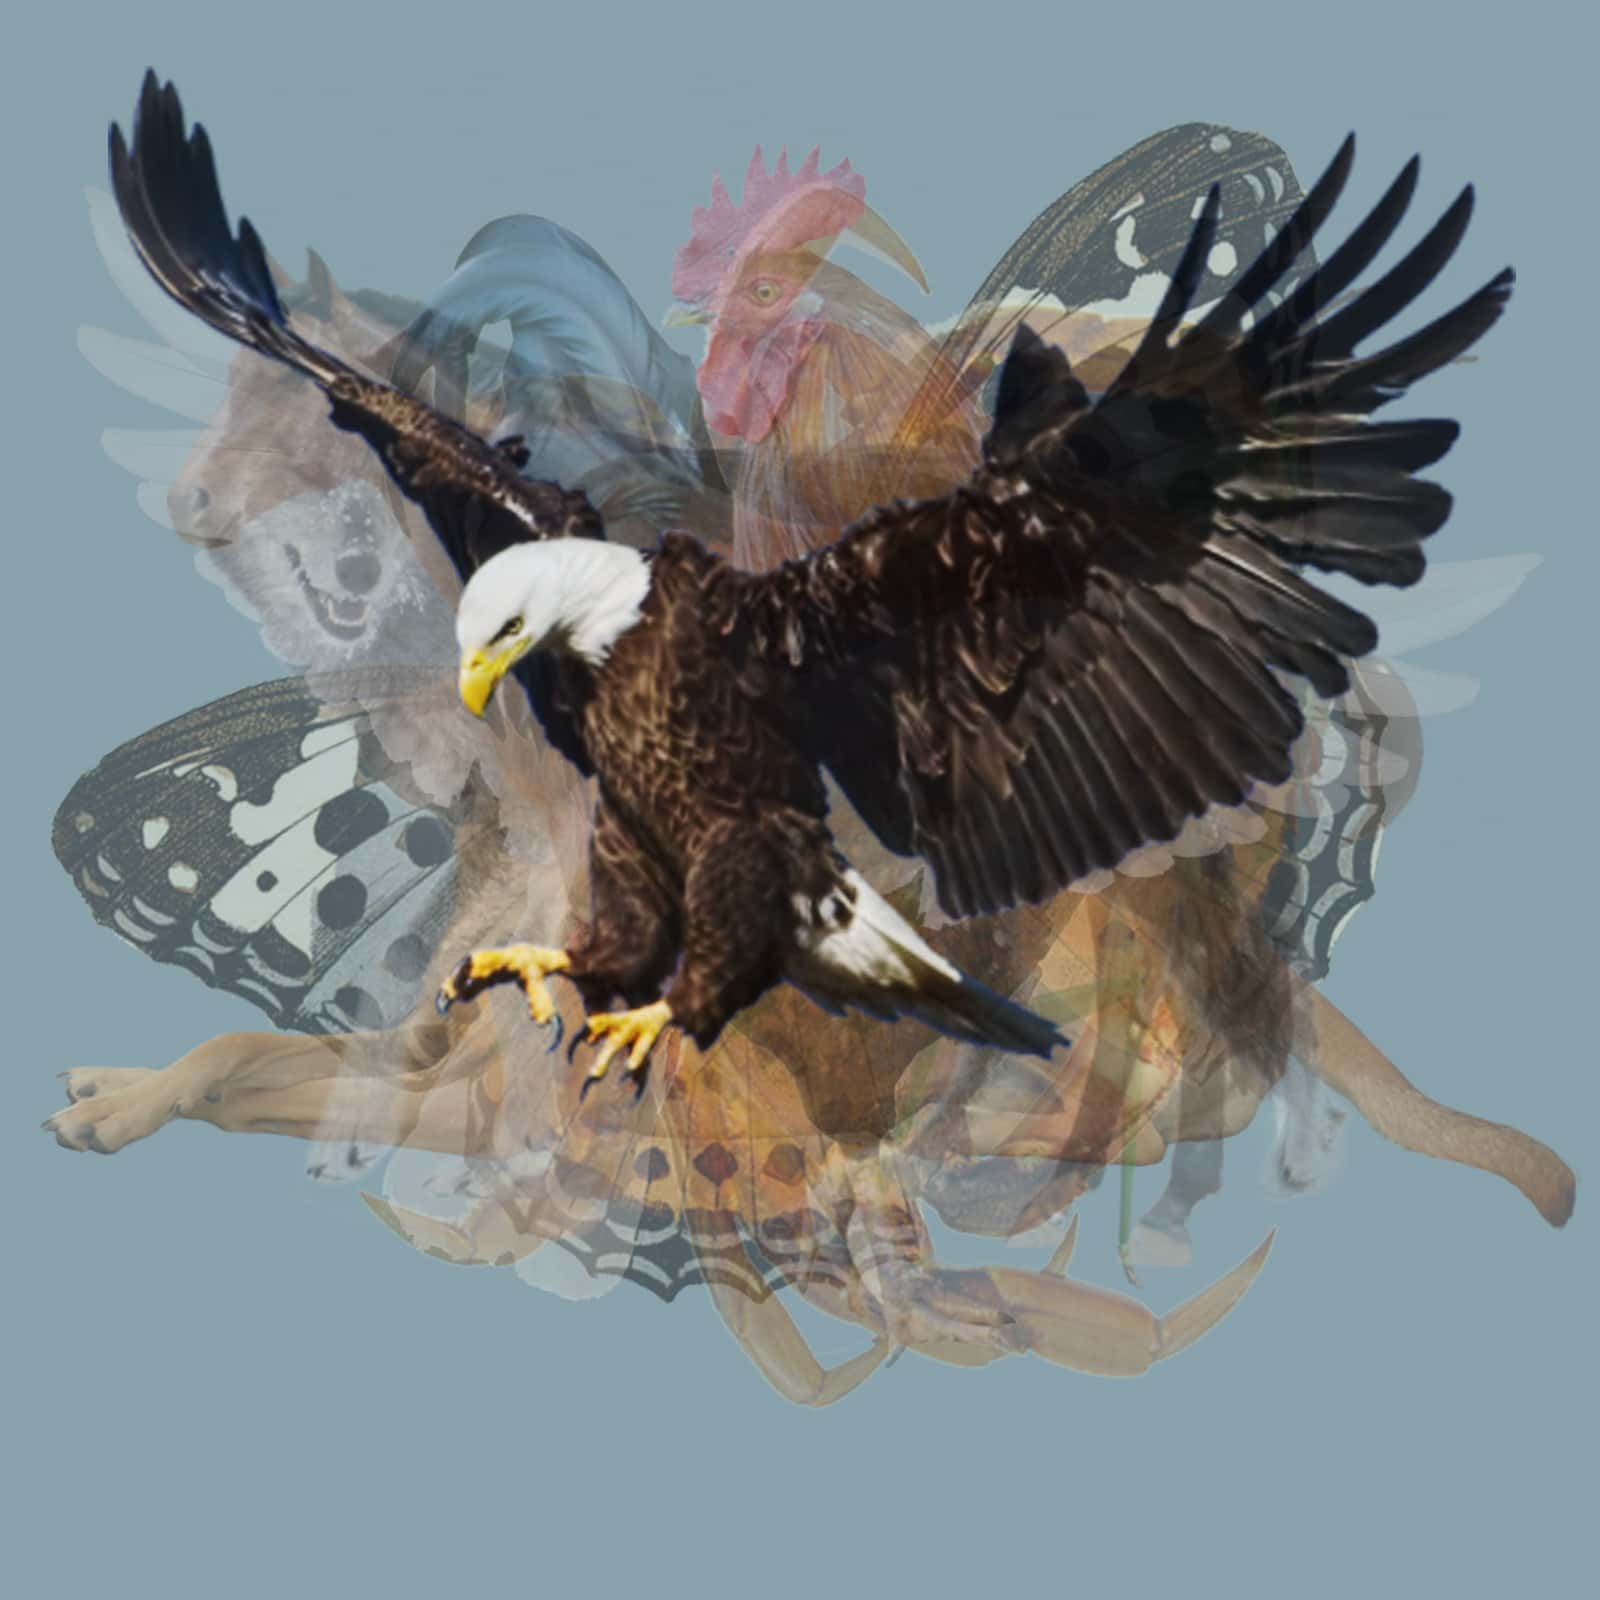 what animal eagle